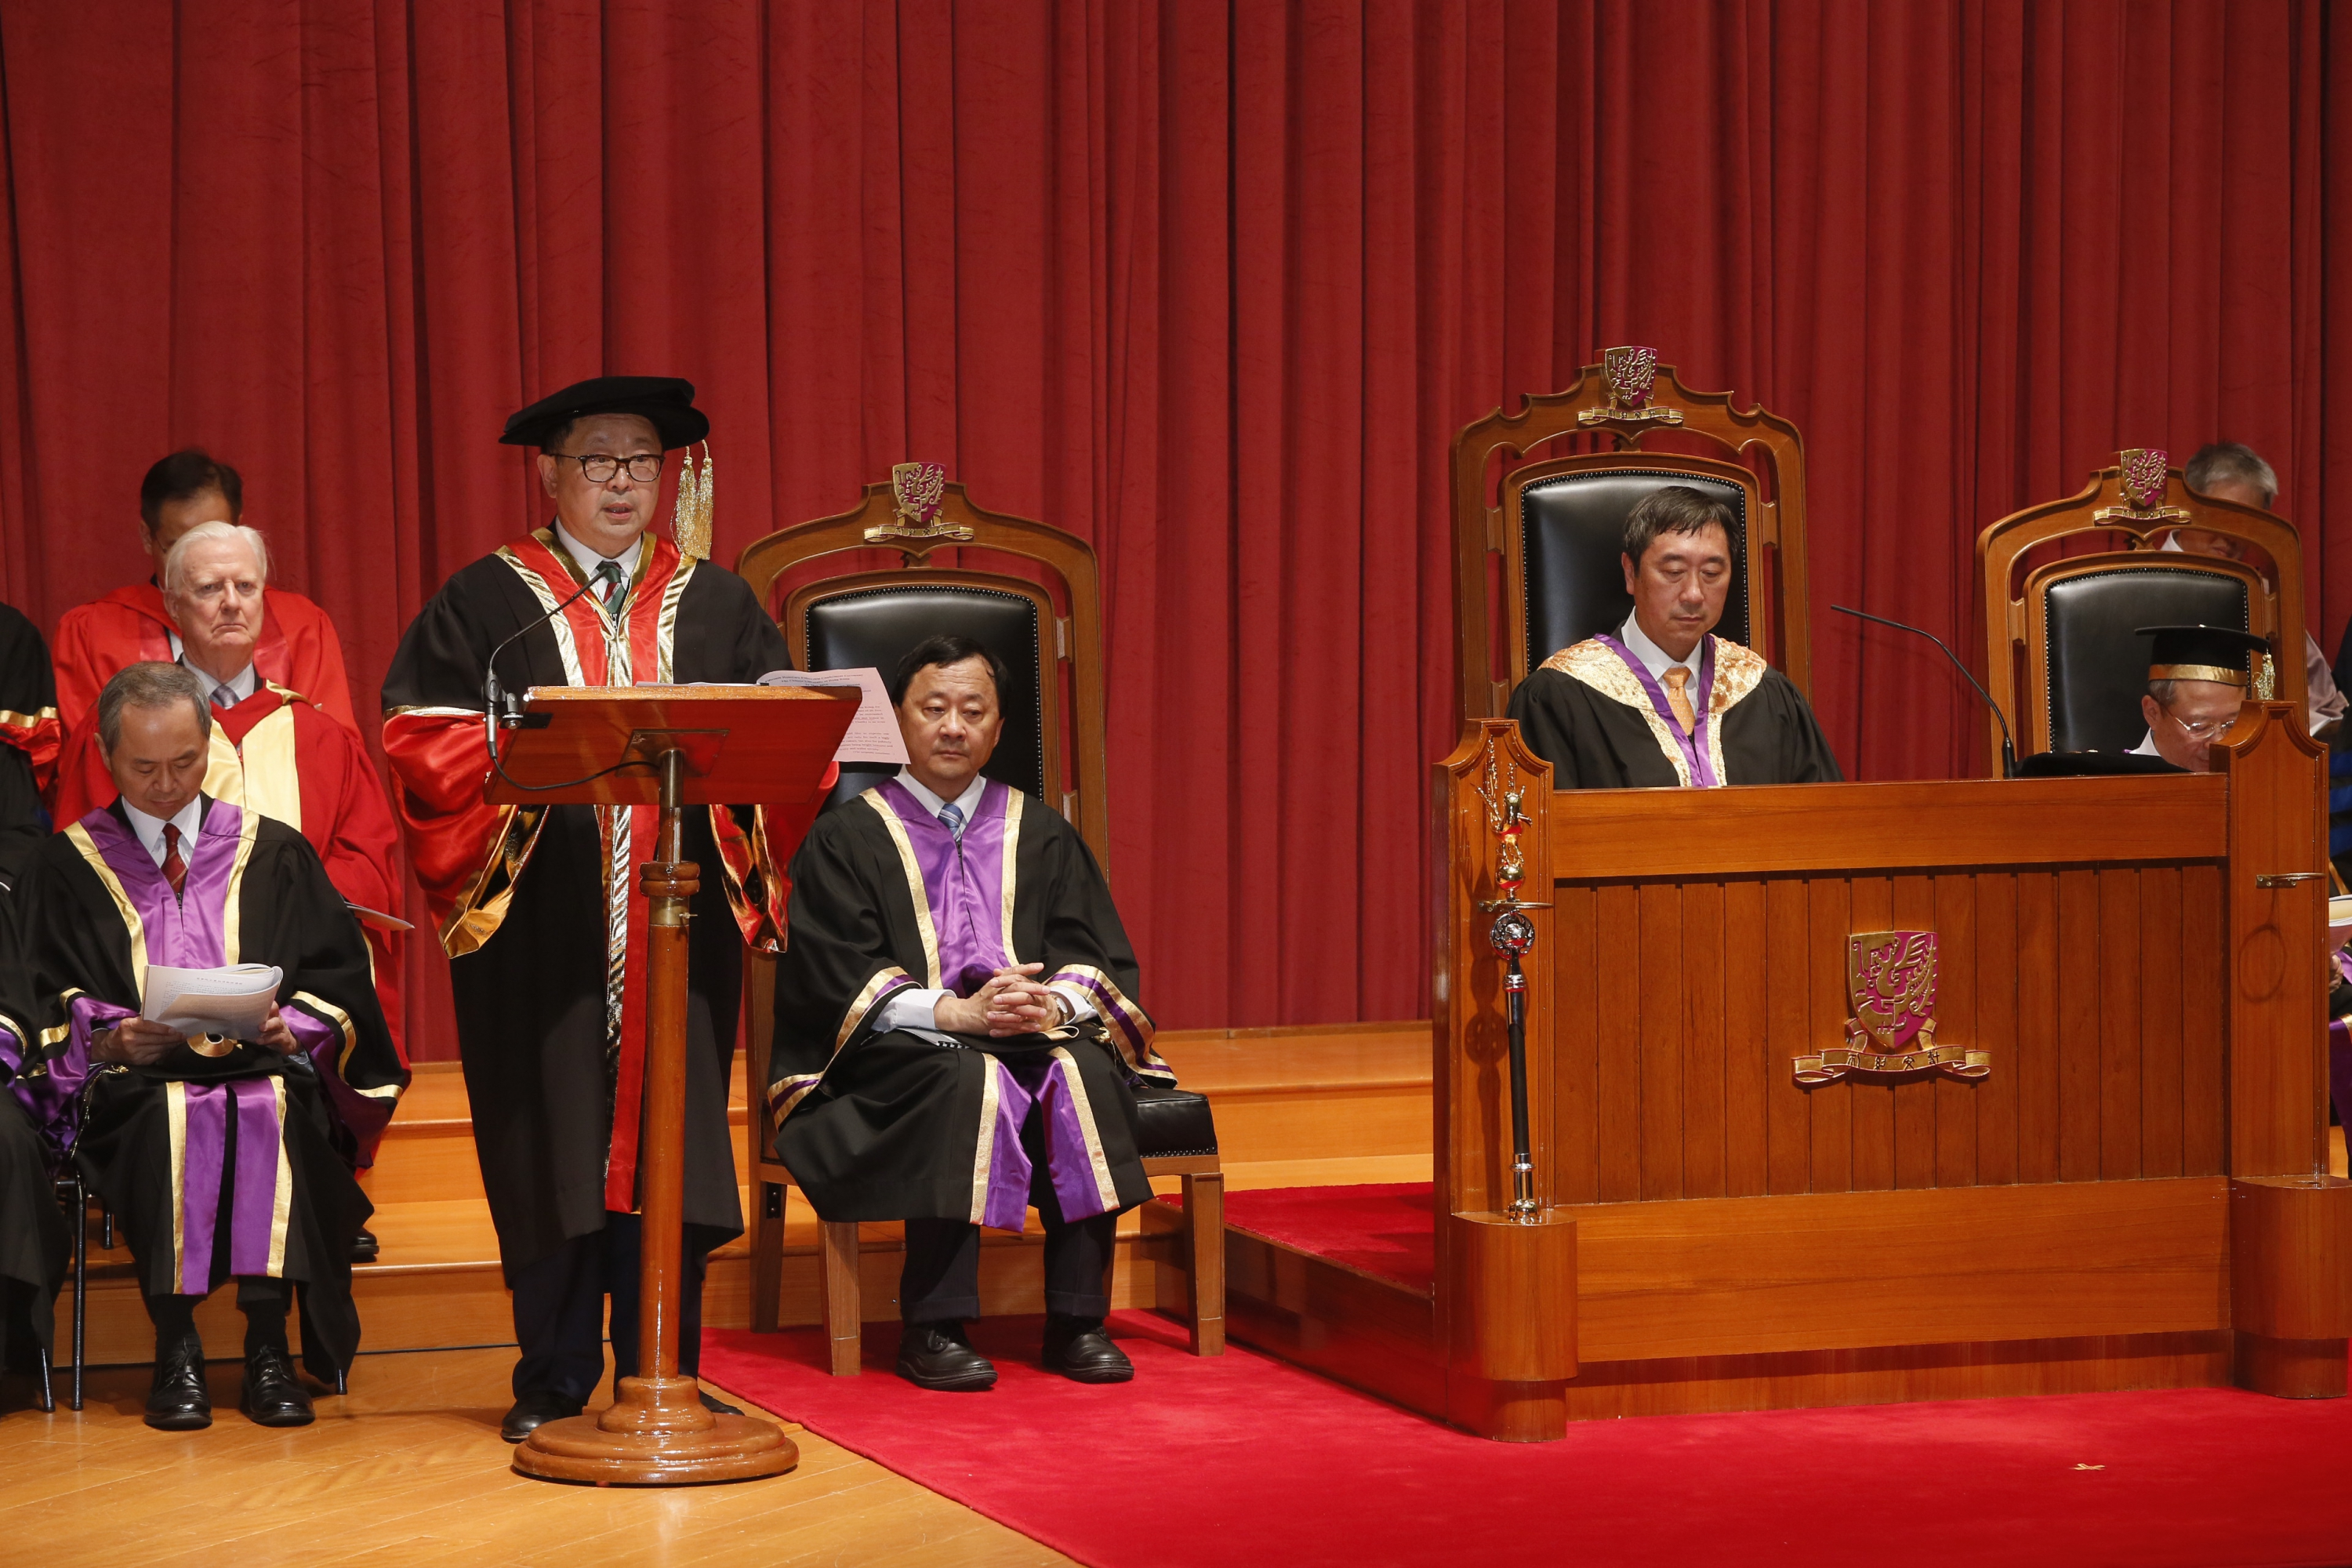 Dr. Li Kwok-tung, Donald delivers an address.